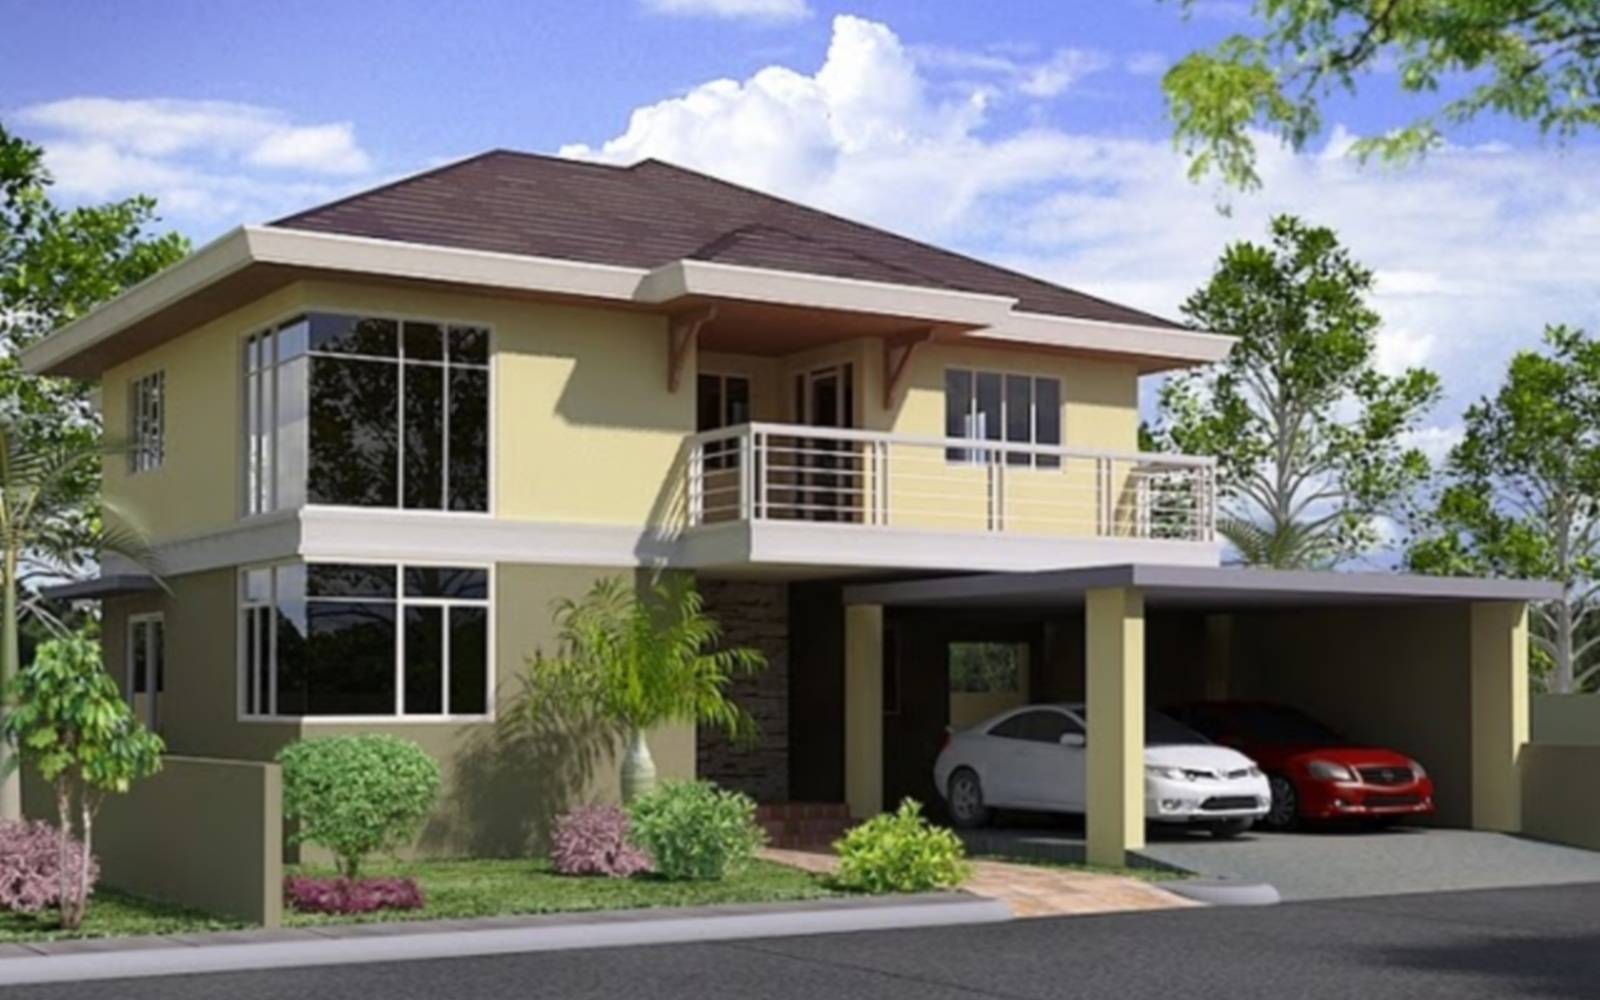 Kk two storey house plan philippines photoshop hd for House plan philippines